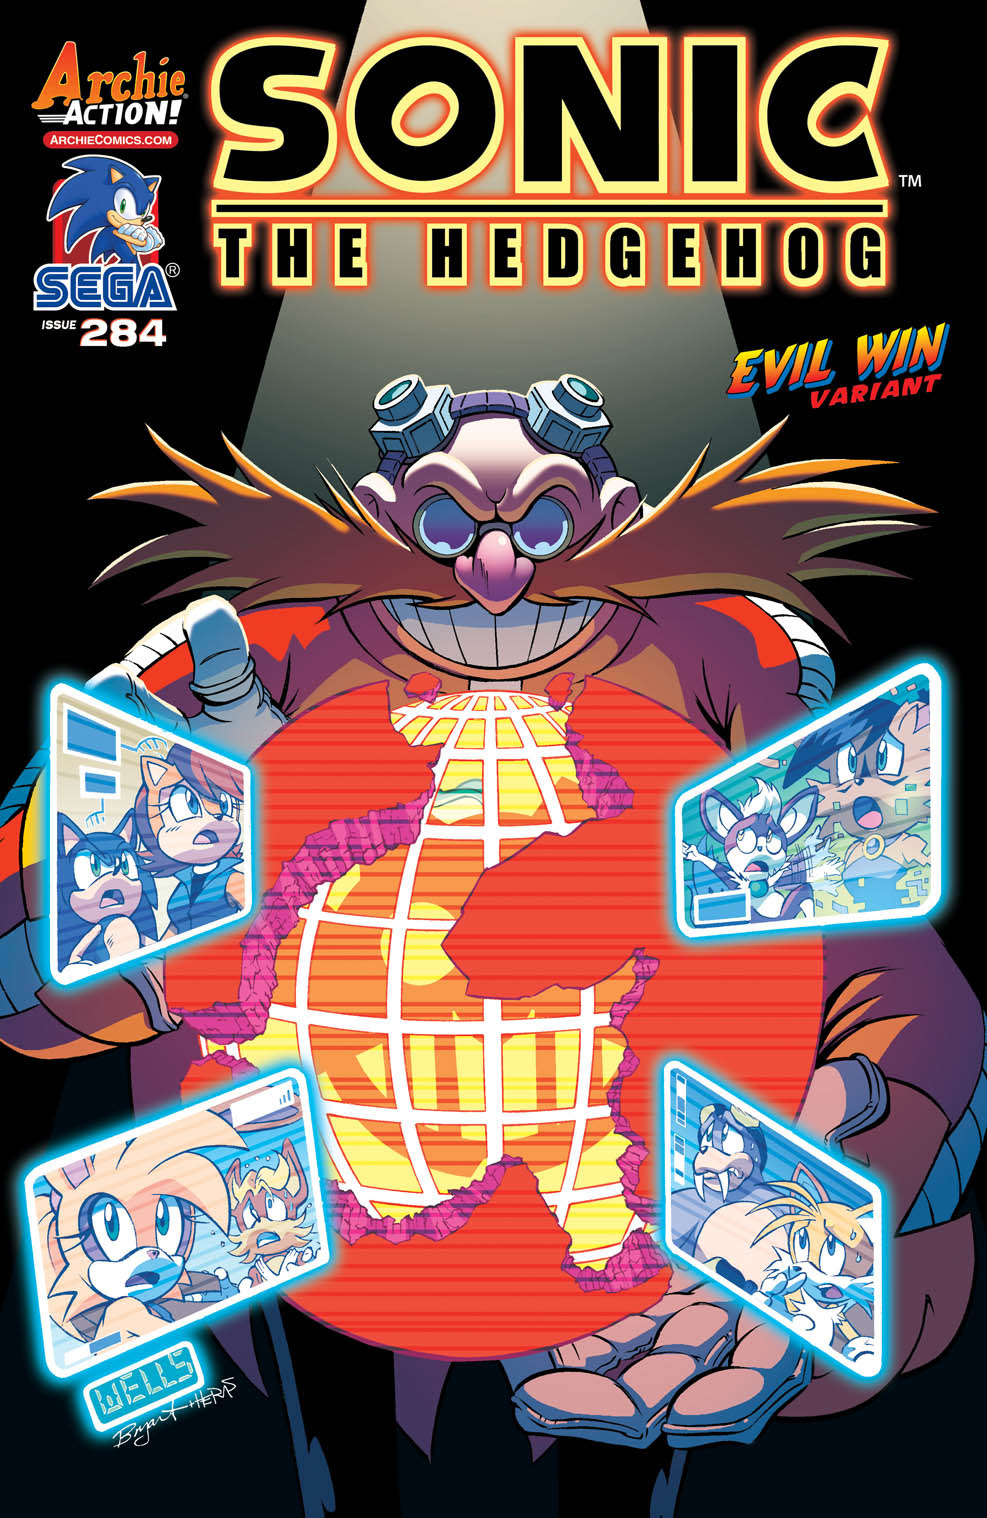 Sonice the Hedgehog #284 Cover